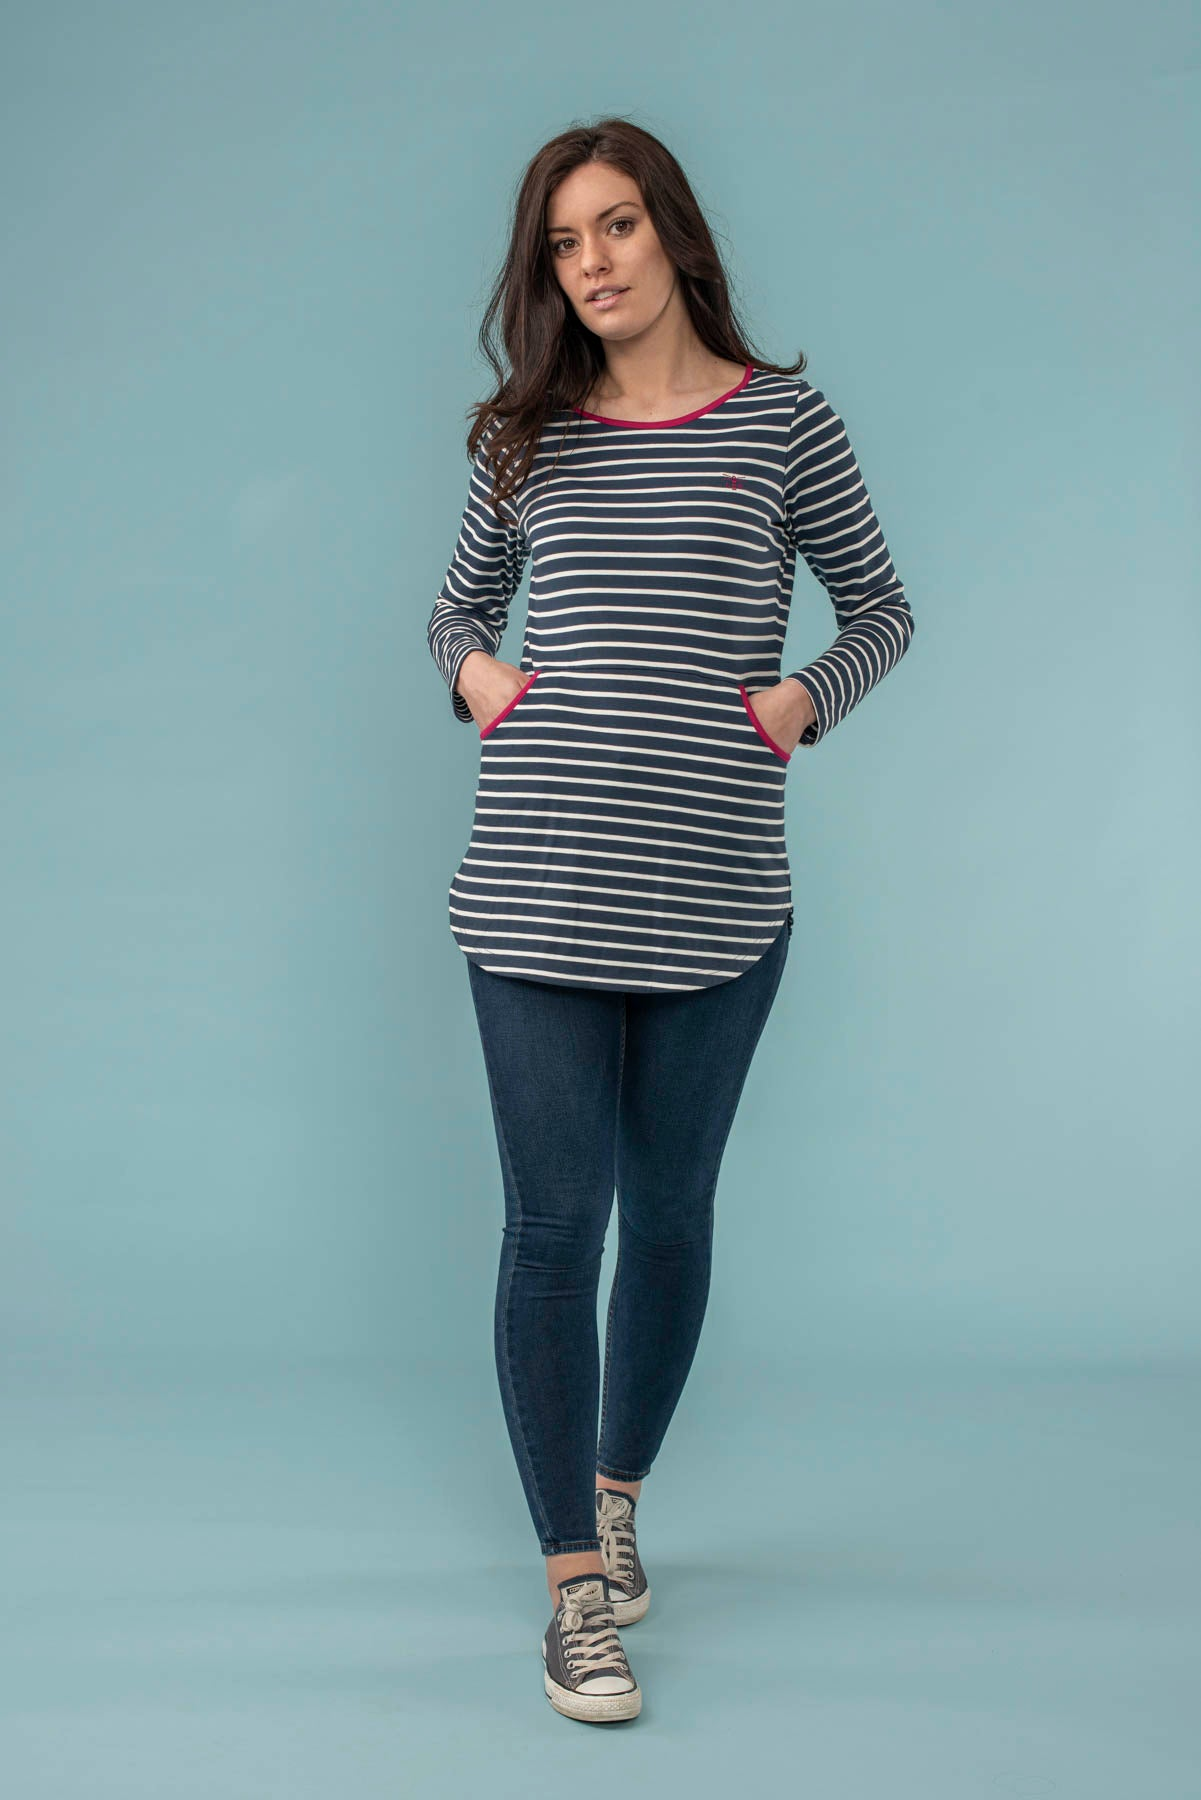 Coastline Womens Tunic in Navy Breton Stripes | Lighthouse